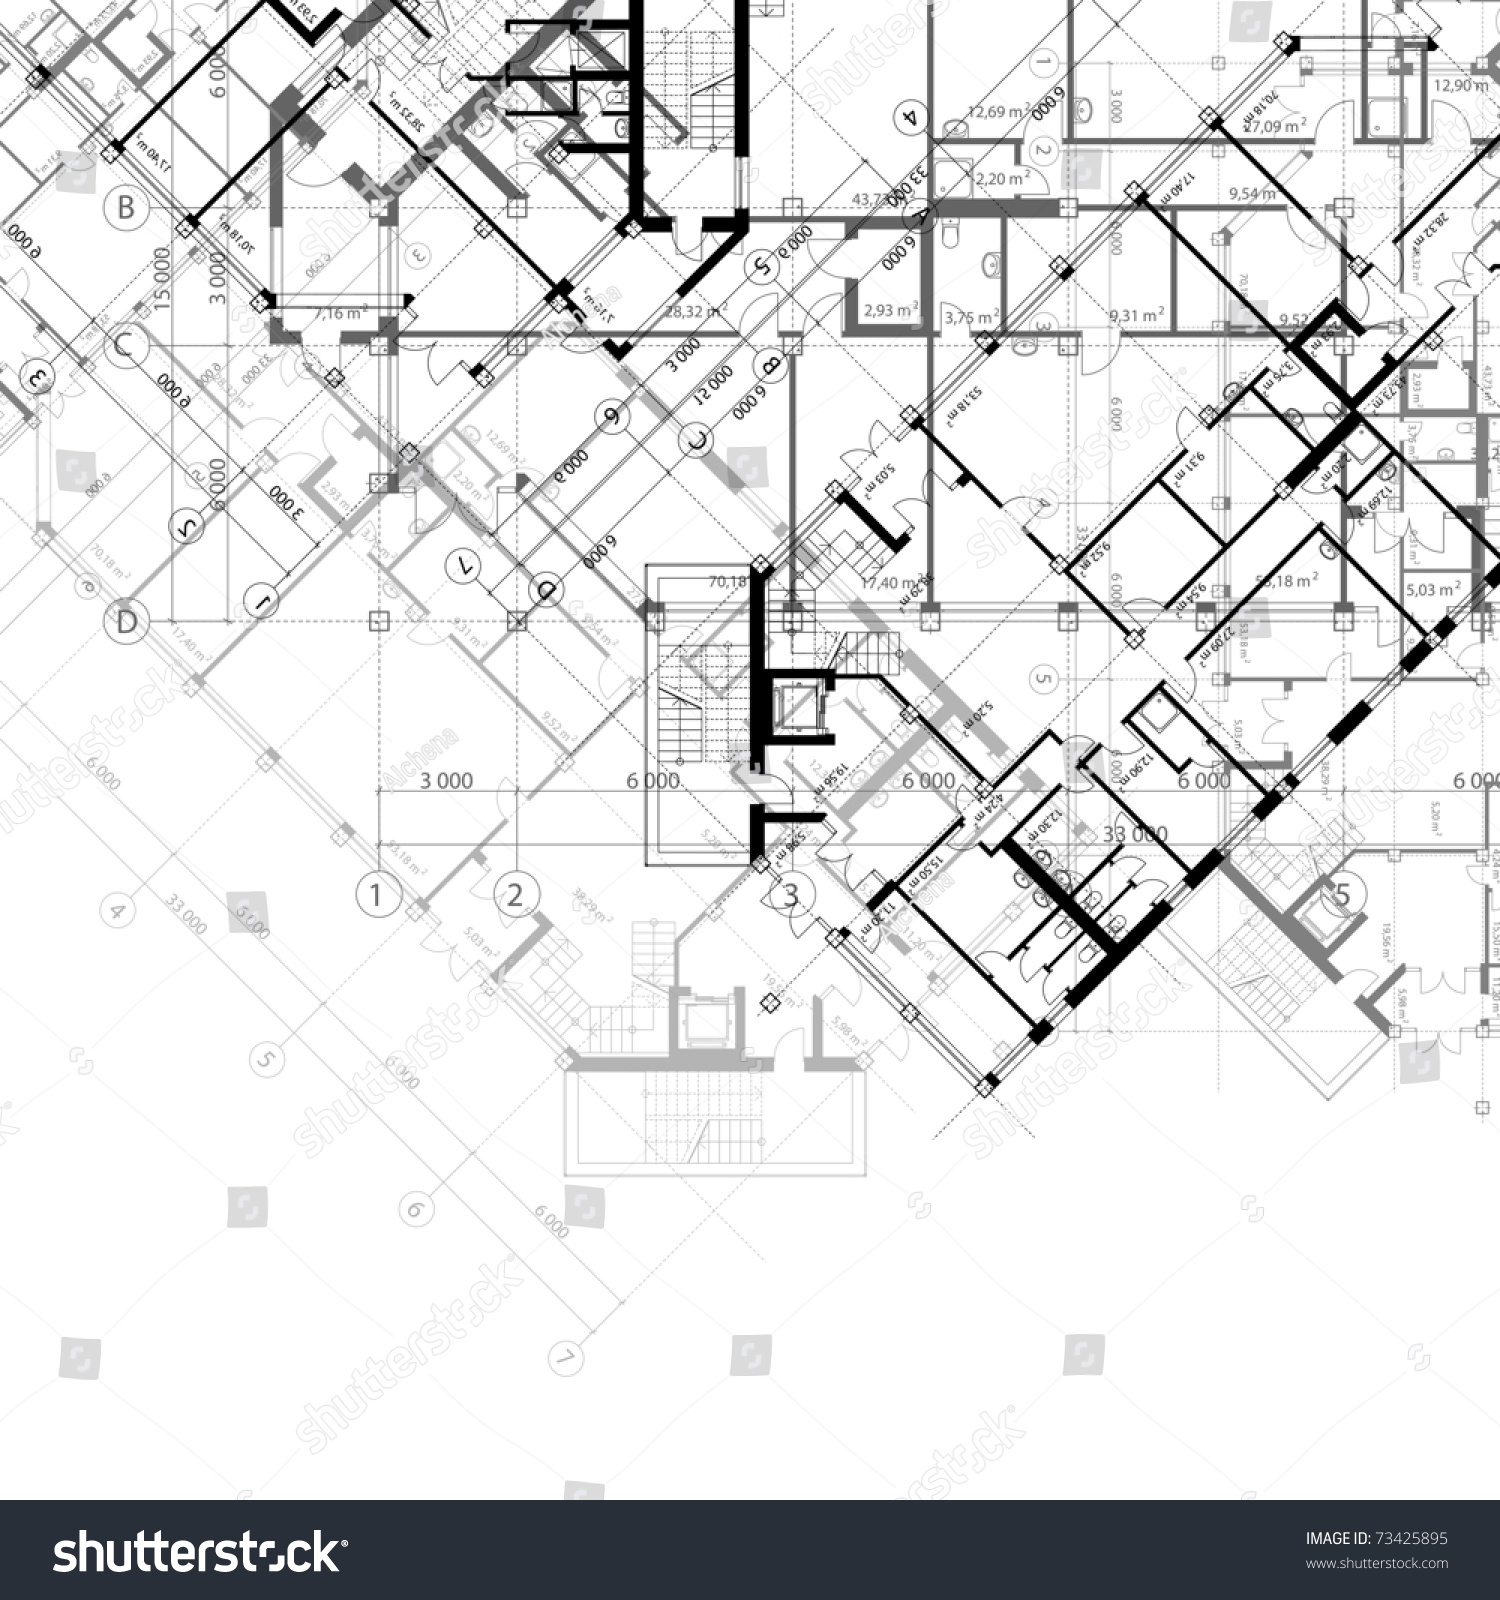 Pics for abstract architecture plans for House dijain photo